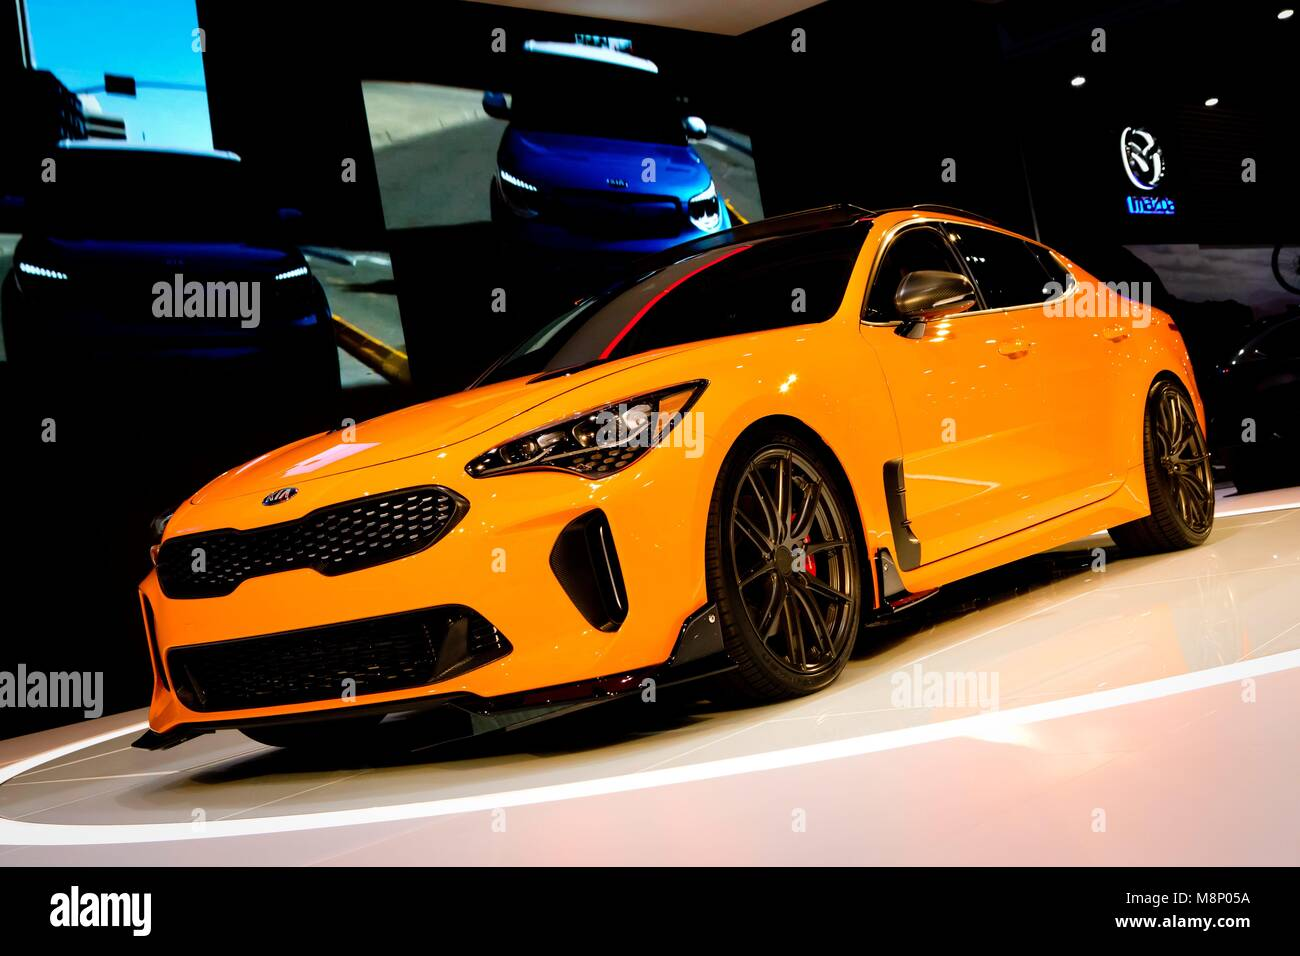 diego auto kia usage in gt photo stock december stinger worldwide international at san the show